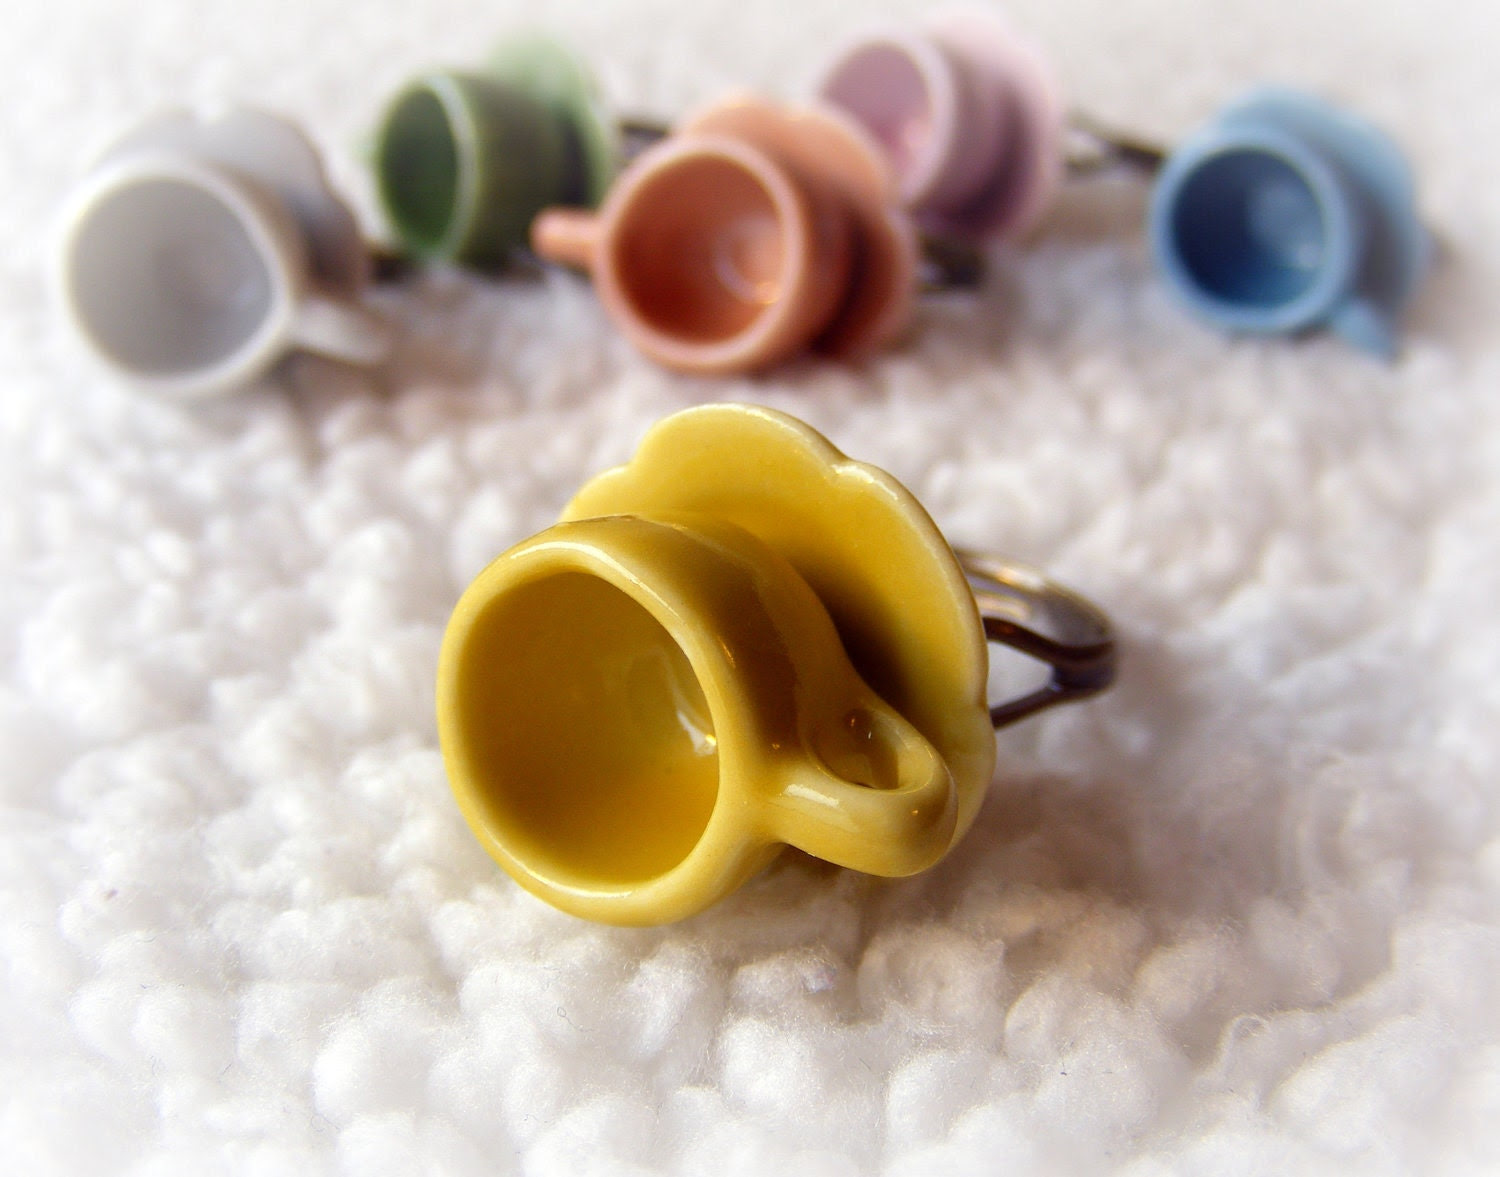 Ring Tea Cup Collectible Miniatures (Your choice of color)